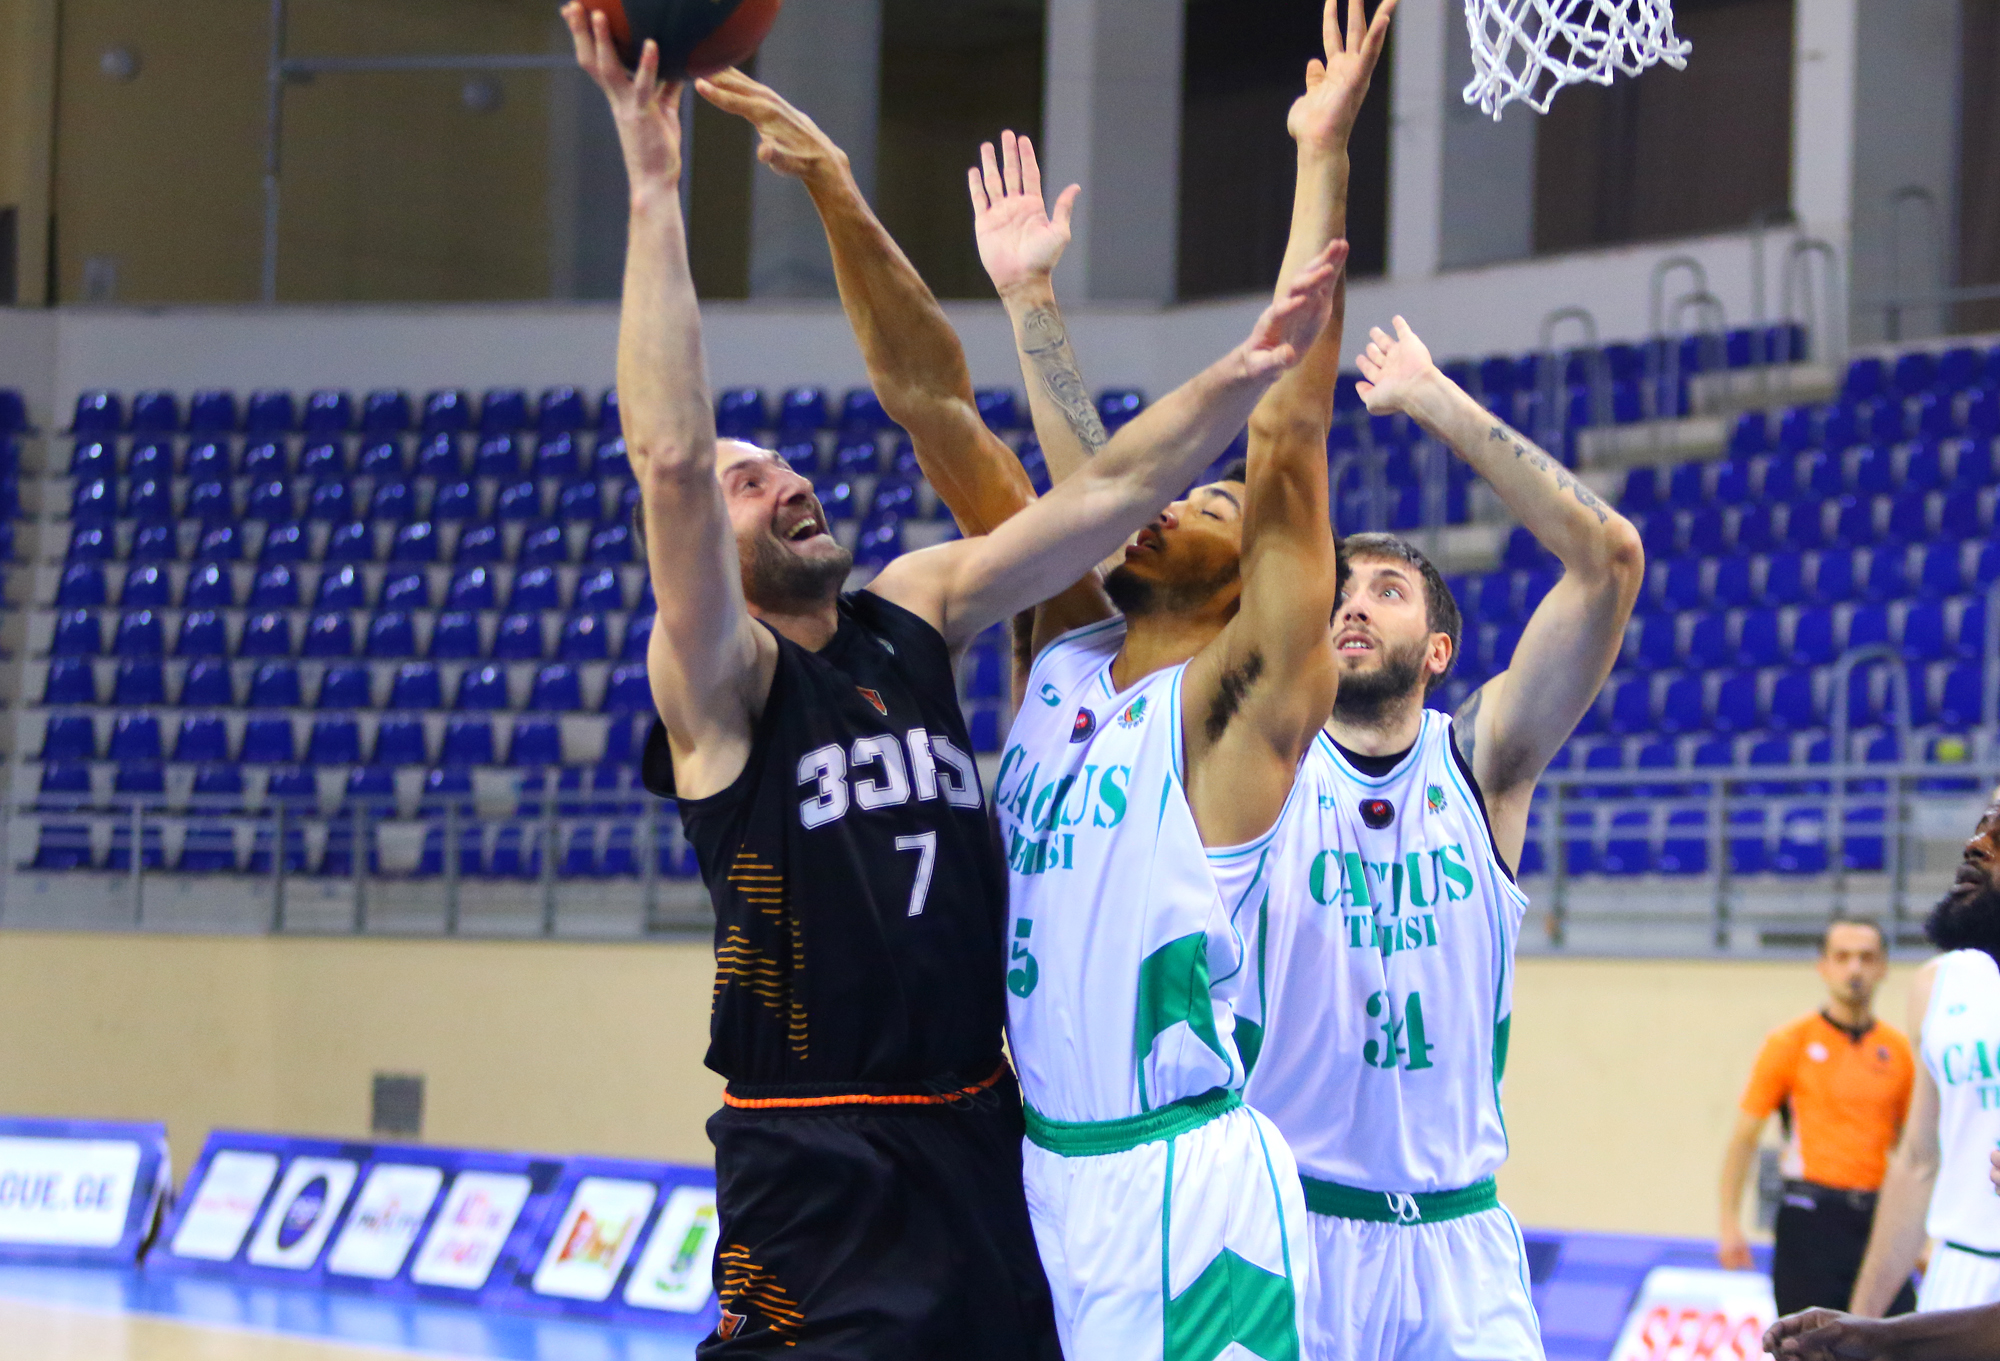 Vakhtang Qadaria's 27 points and Vera's 4th victory in the Superleague